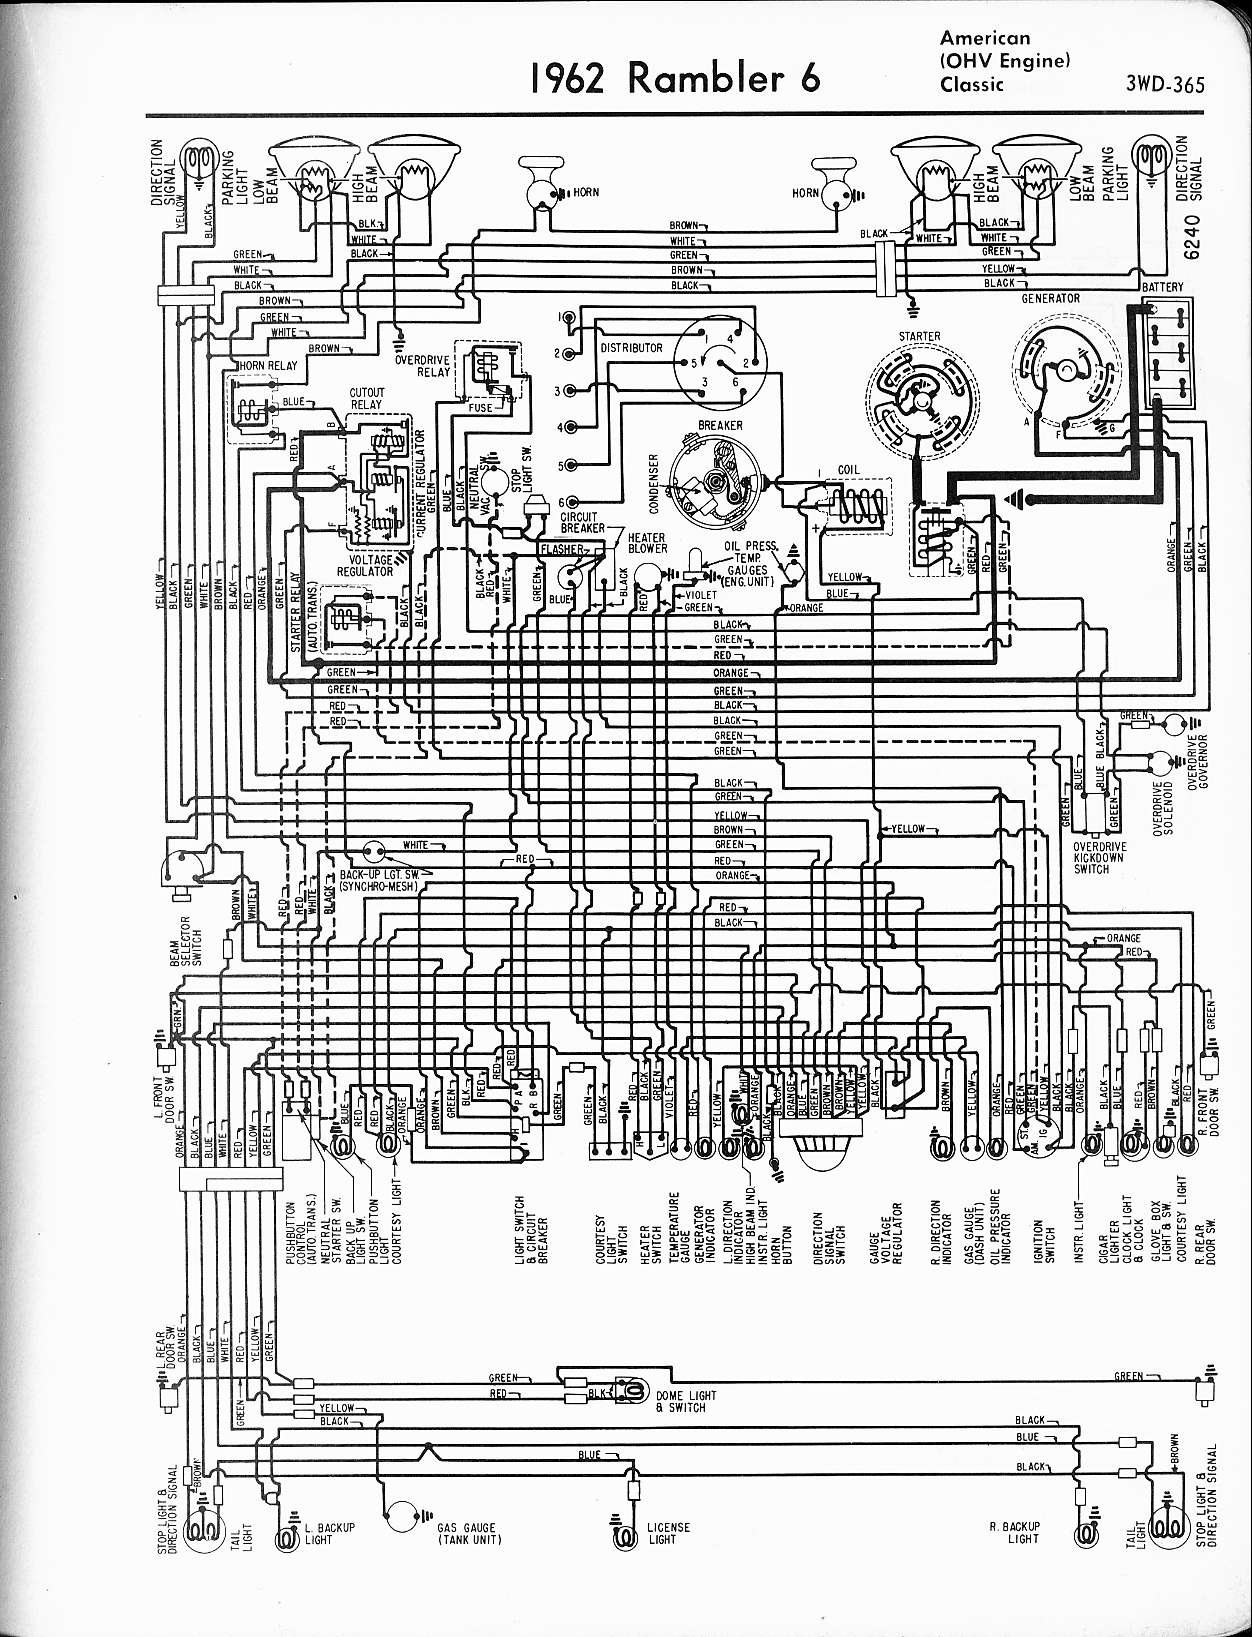 MWire5765 365 rambler wiring diagrams the old car manual project 1964 rambler fuse box diagram at readyjetset.co